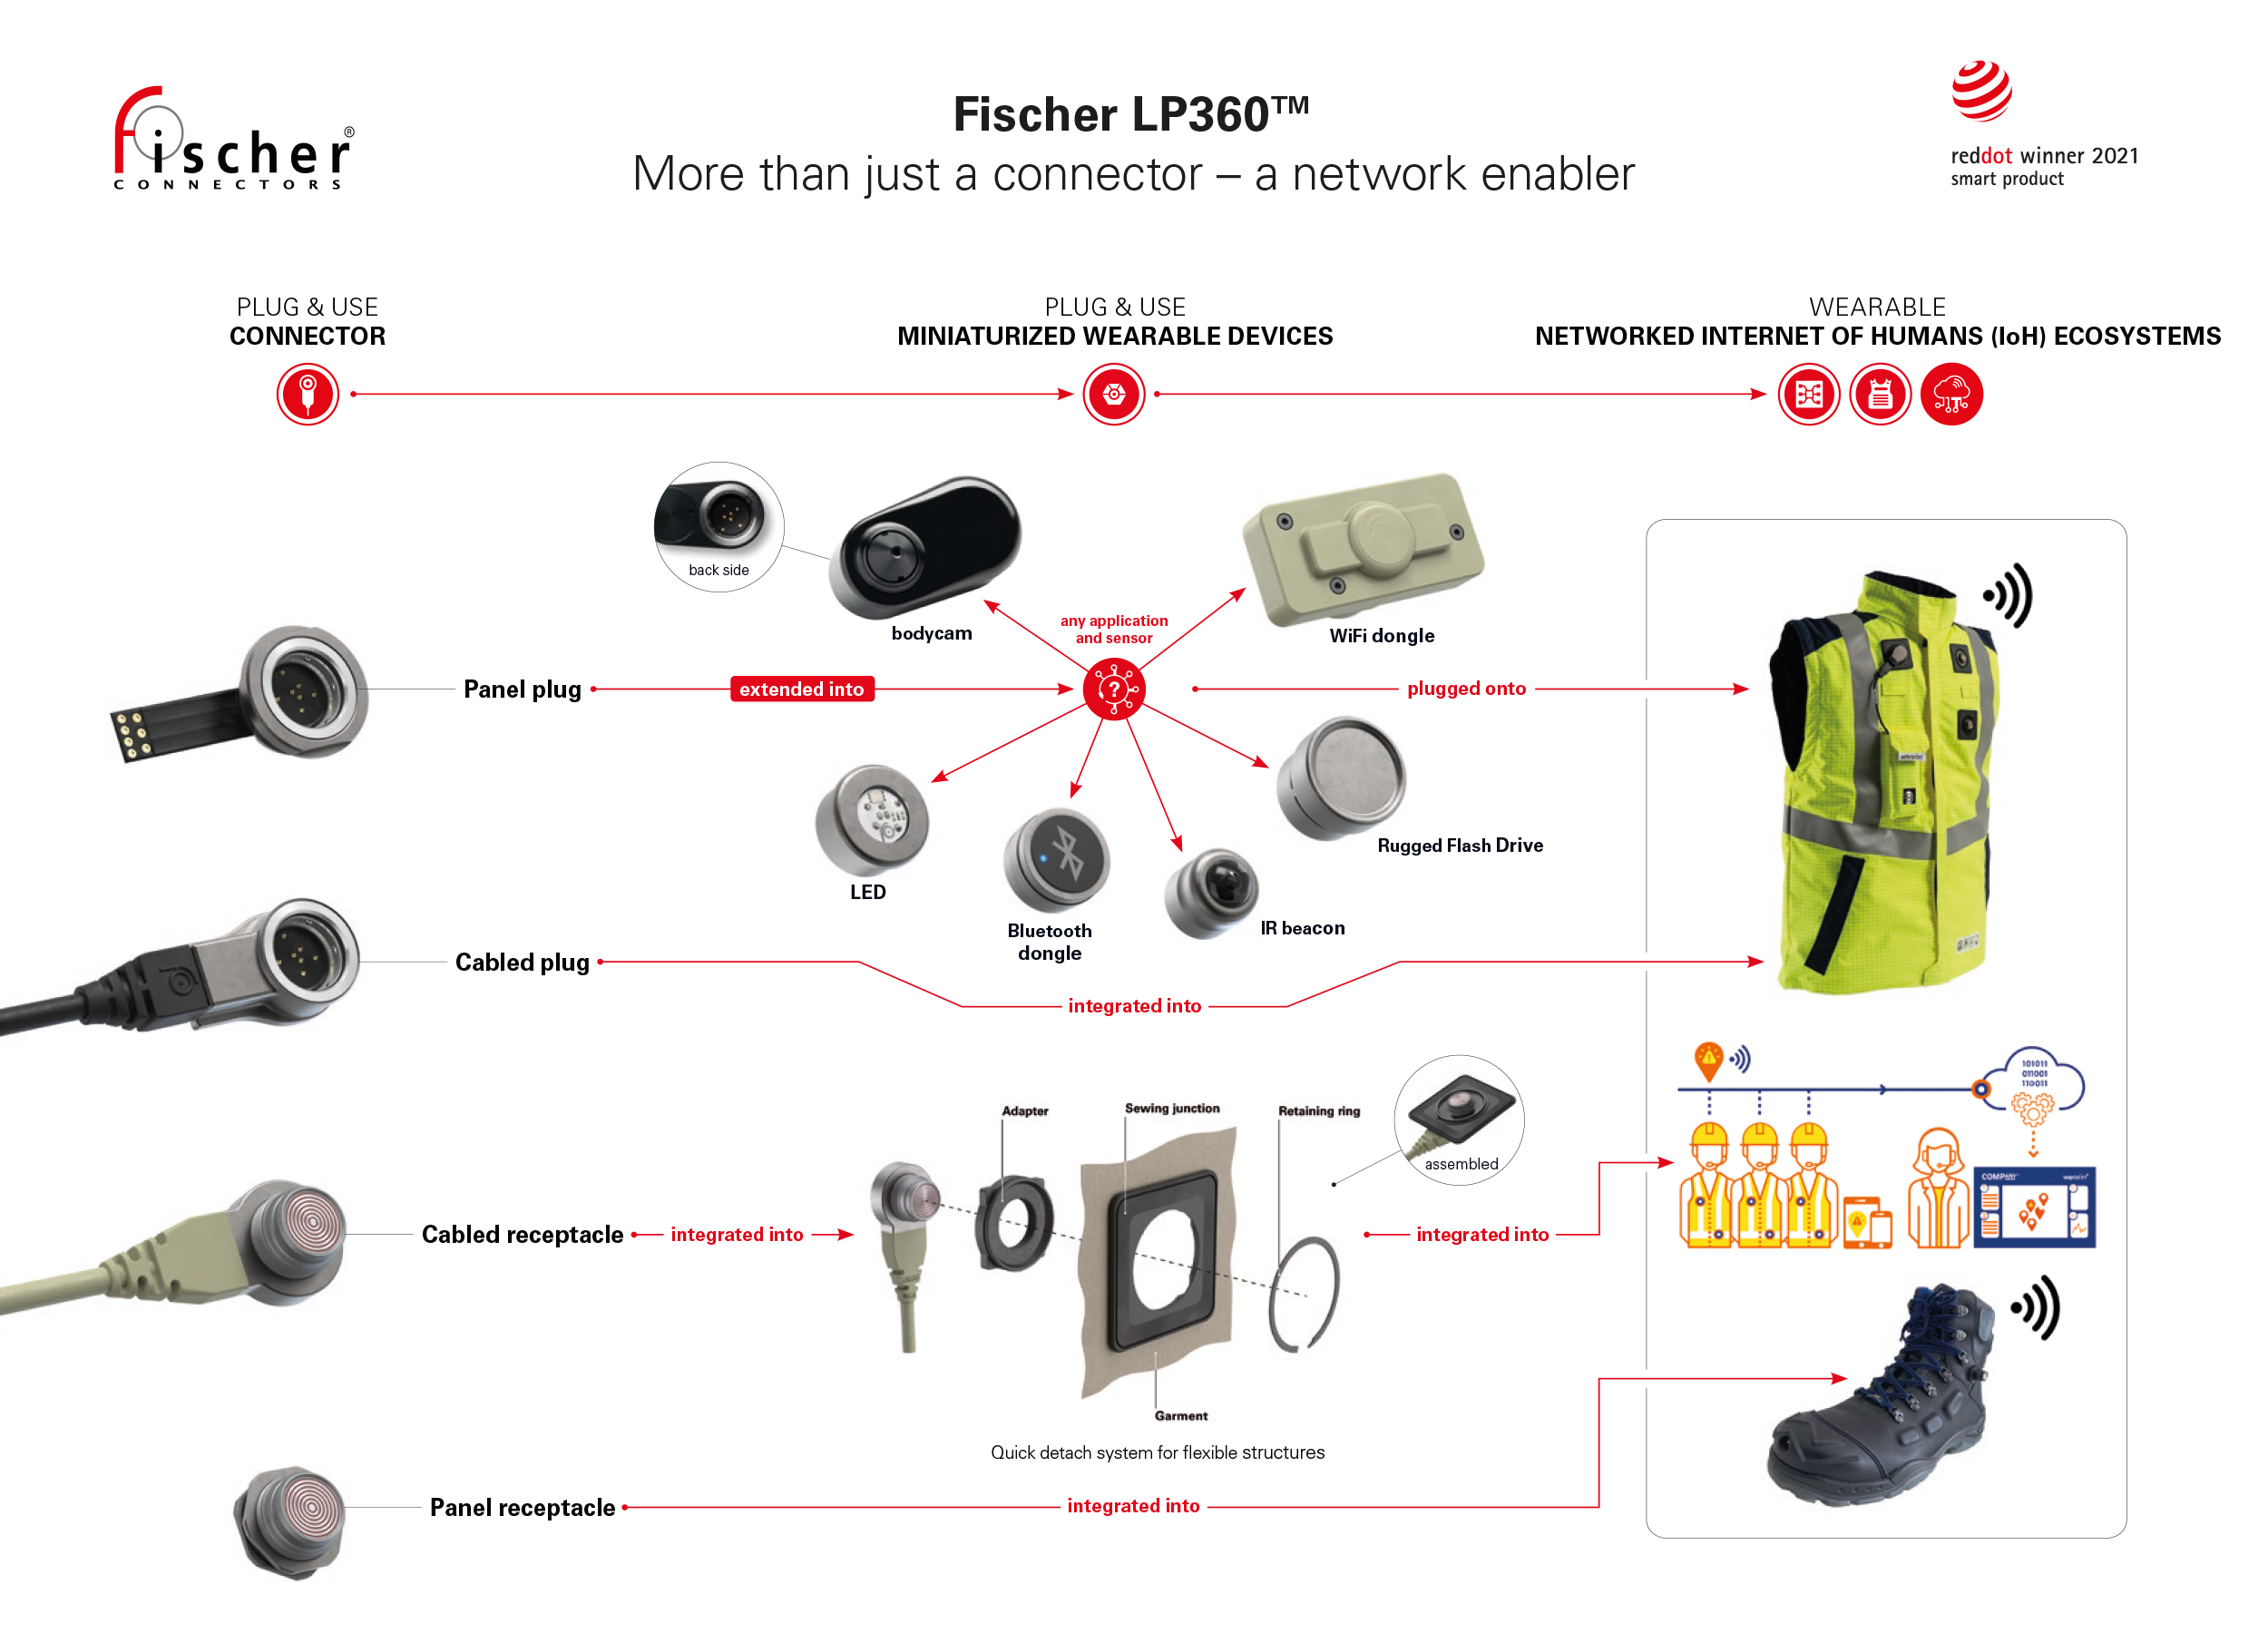 Fischer LP360™ connector wins in two categories of the Red Dot Award: Product Design 2021